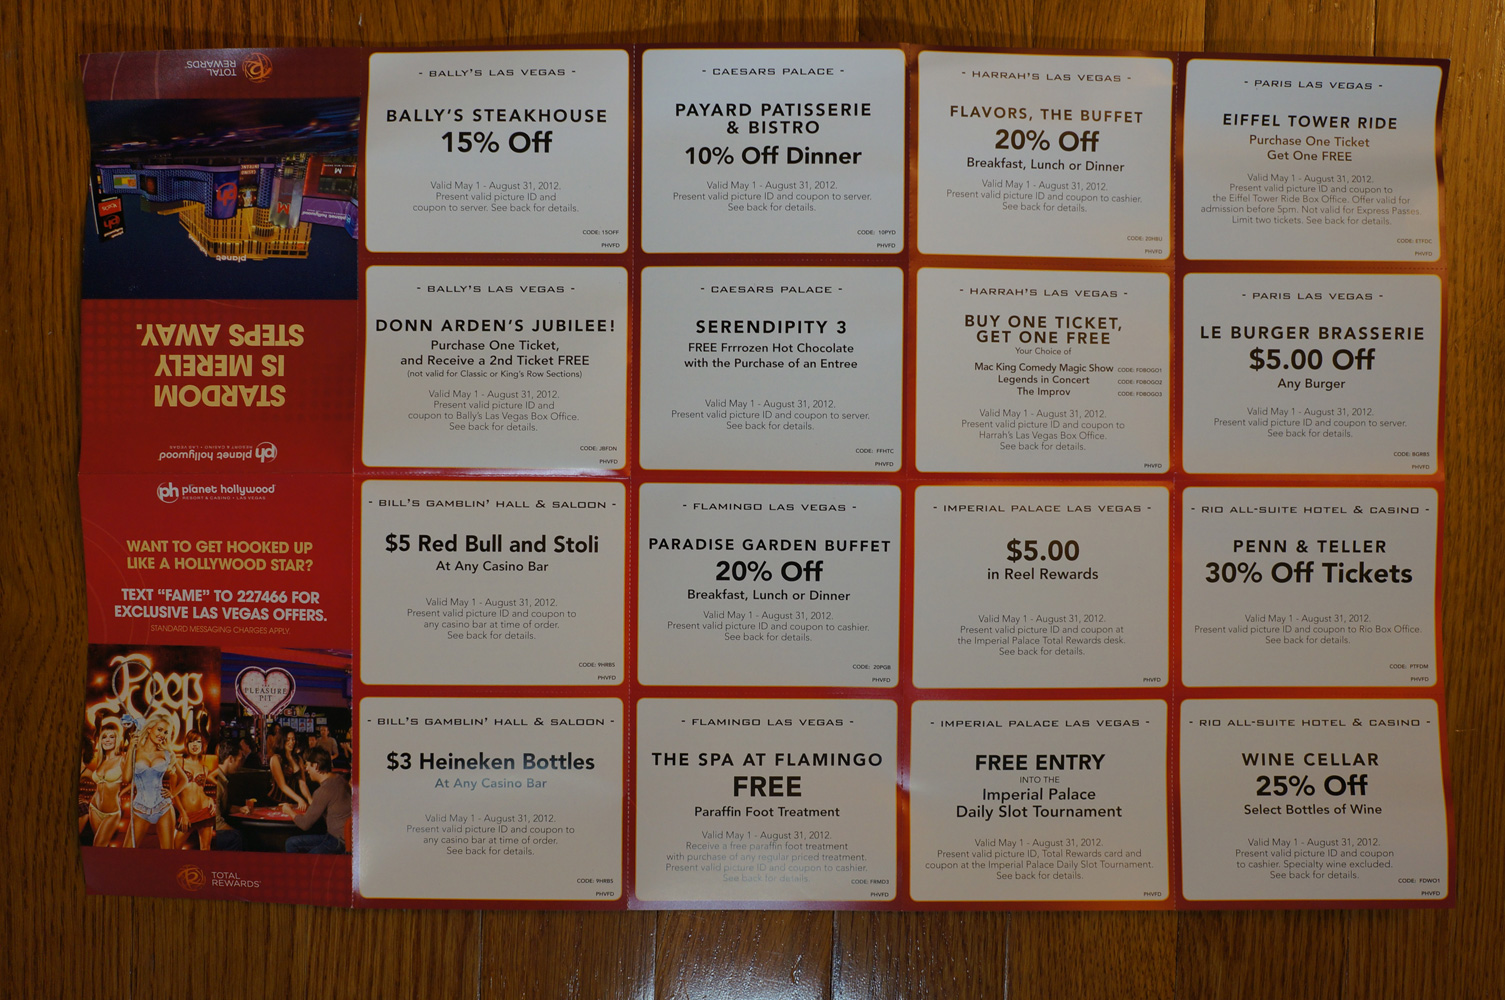 Hotel coupon codes